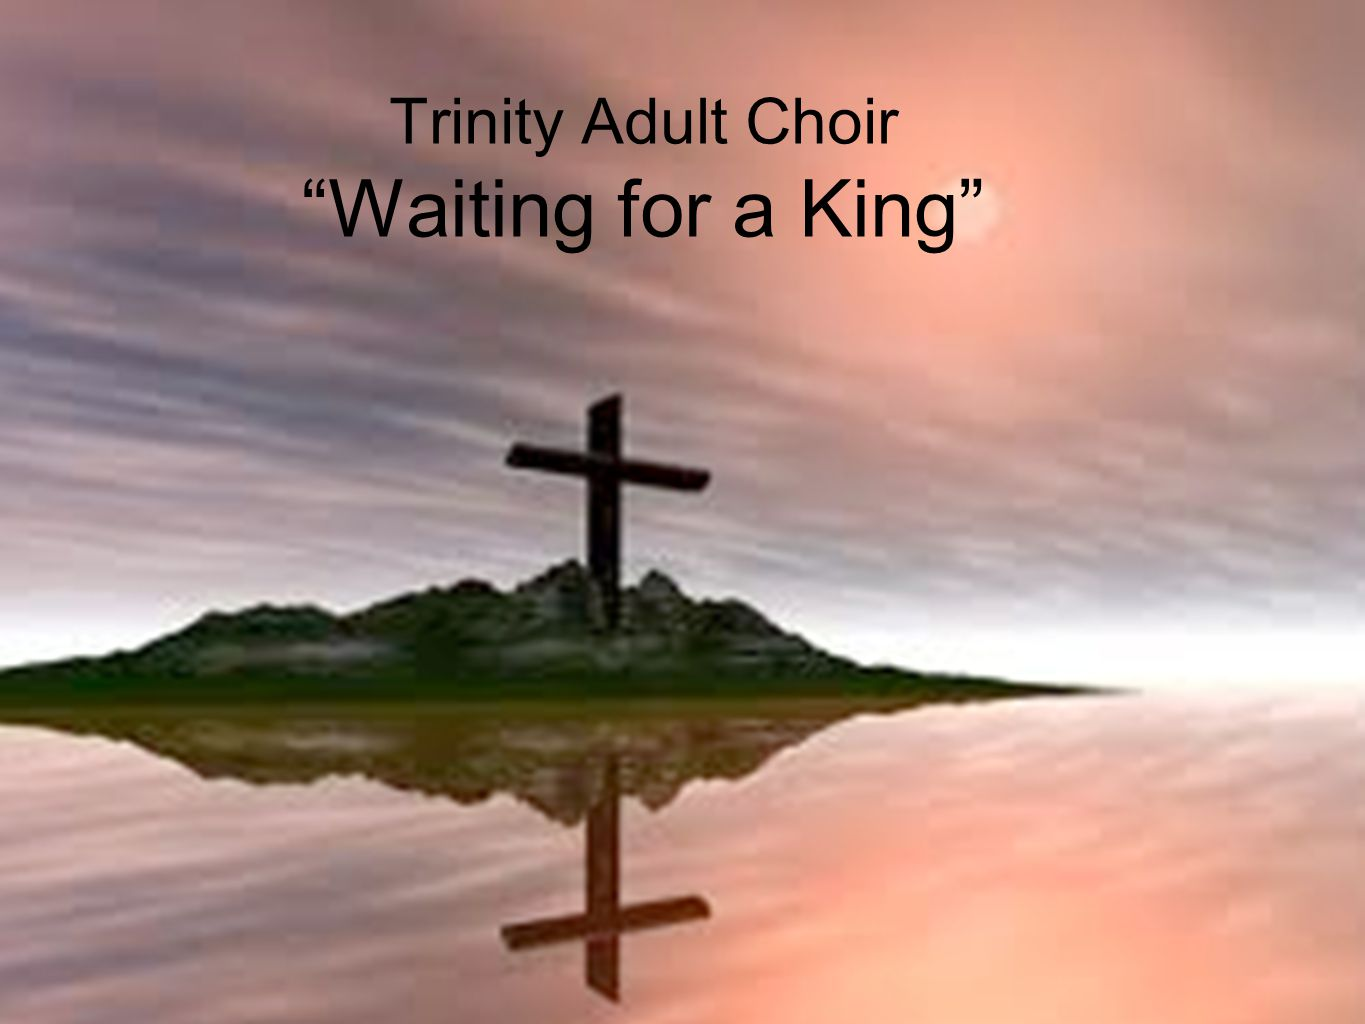 Trinity Adult Choir Waiting for a King